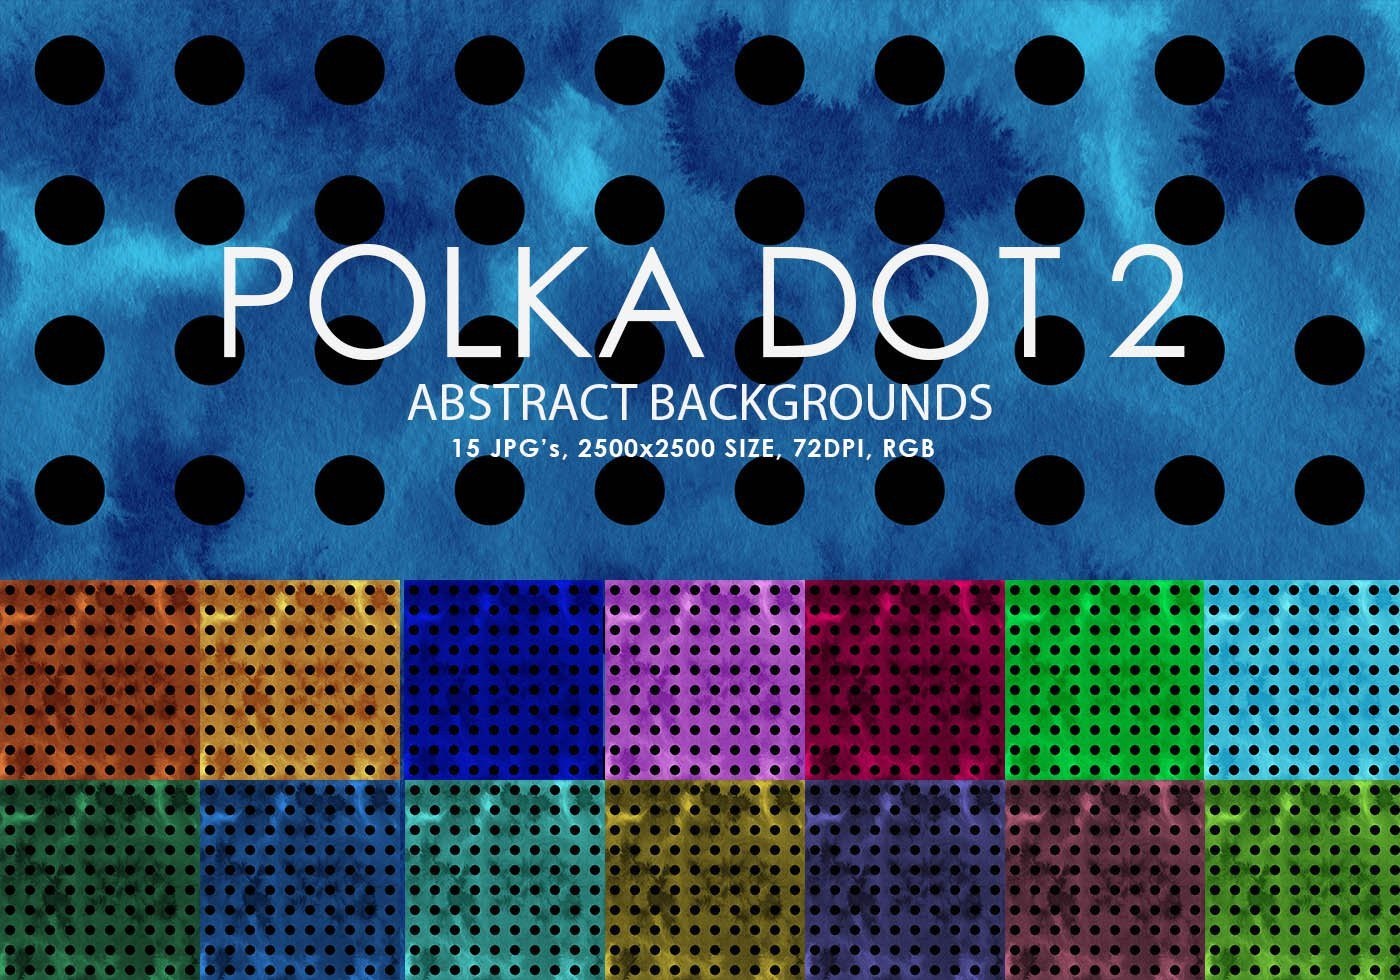 Polka Dot Brush Photoshop Free Polka Dot Backgrounds 2 Free Shop Brushes at